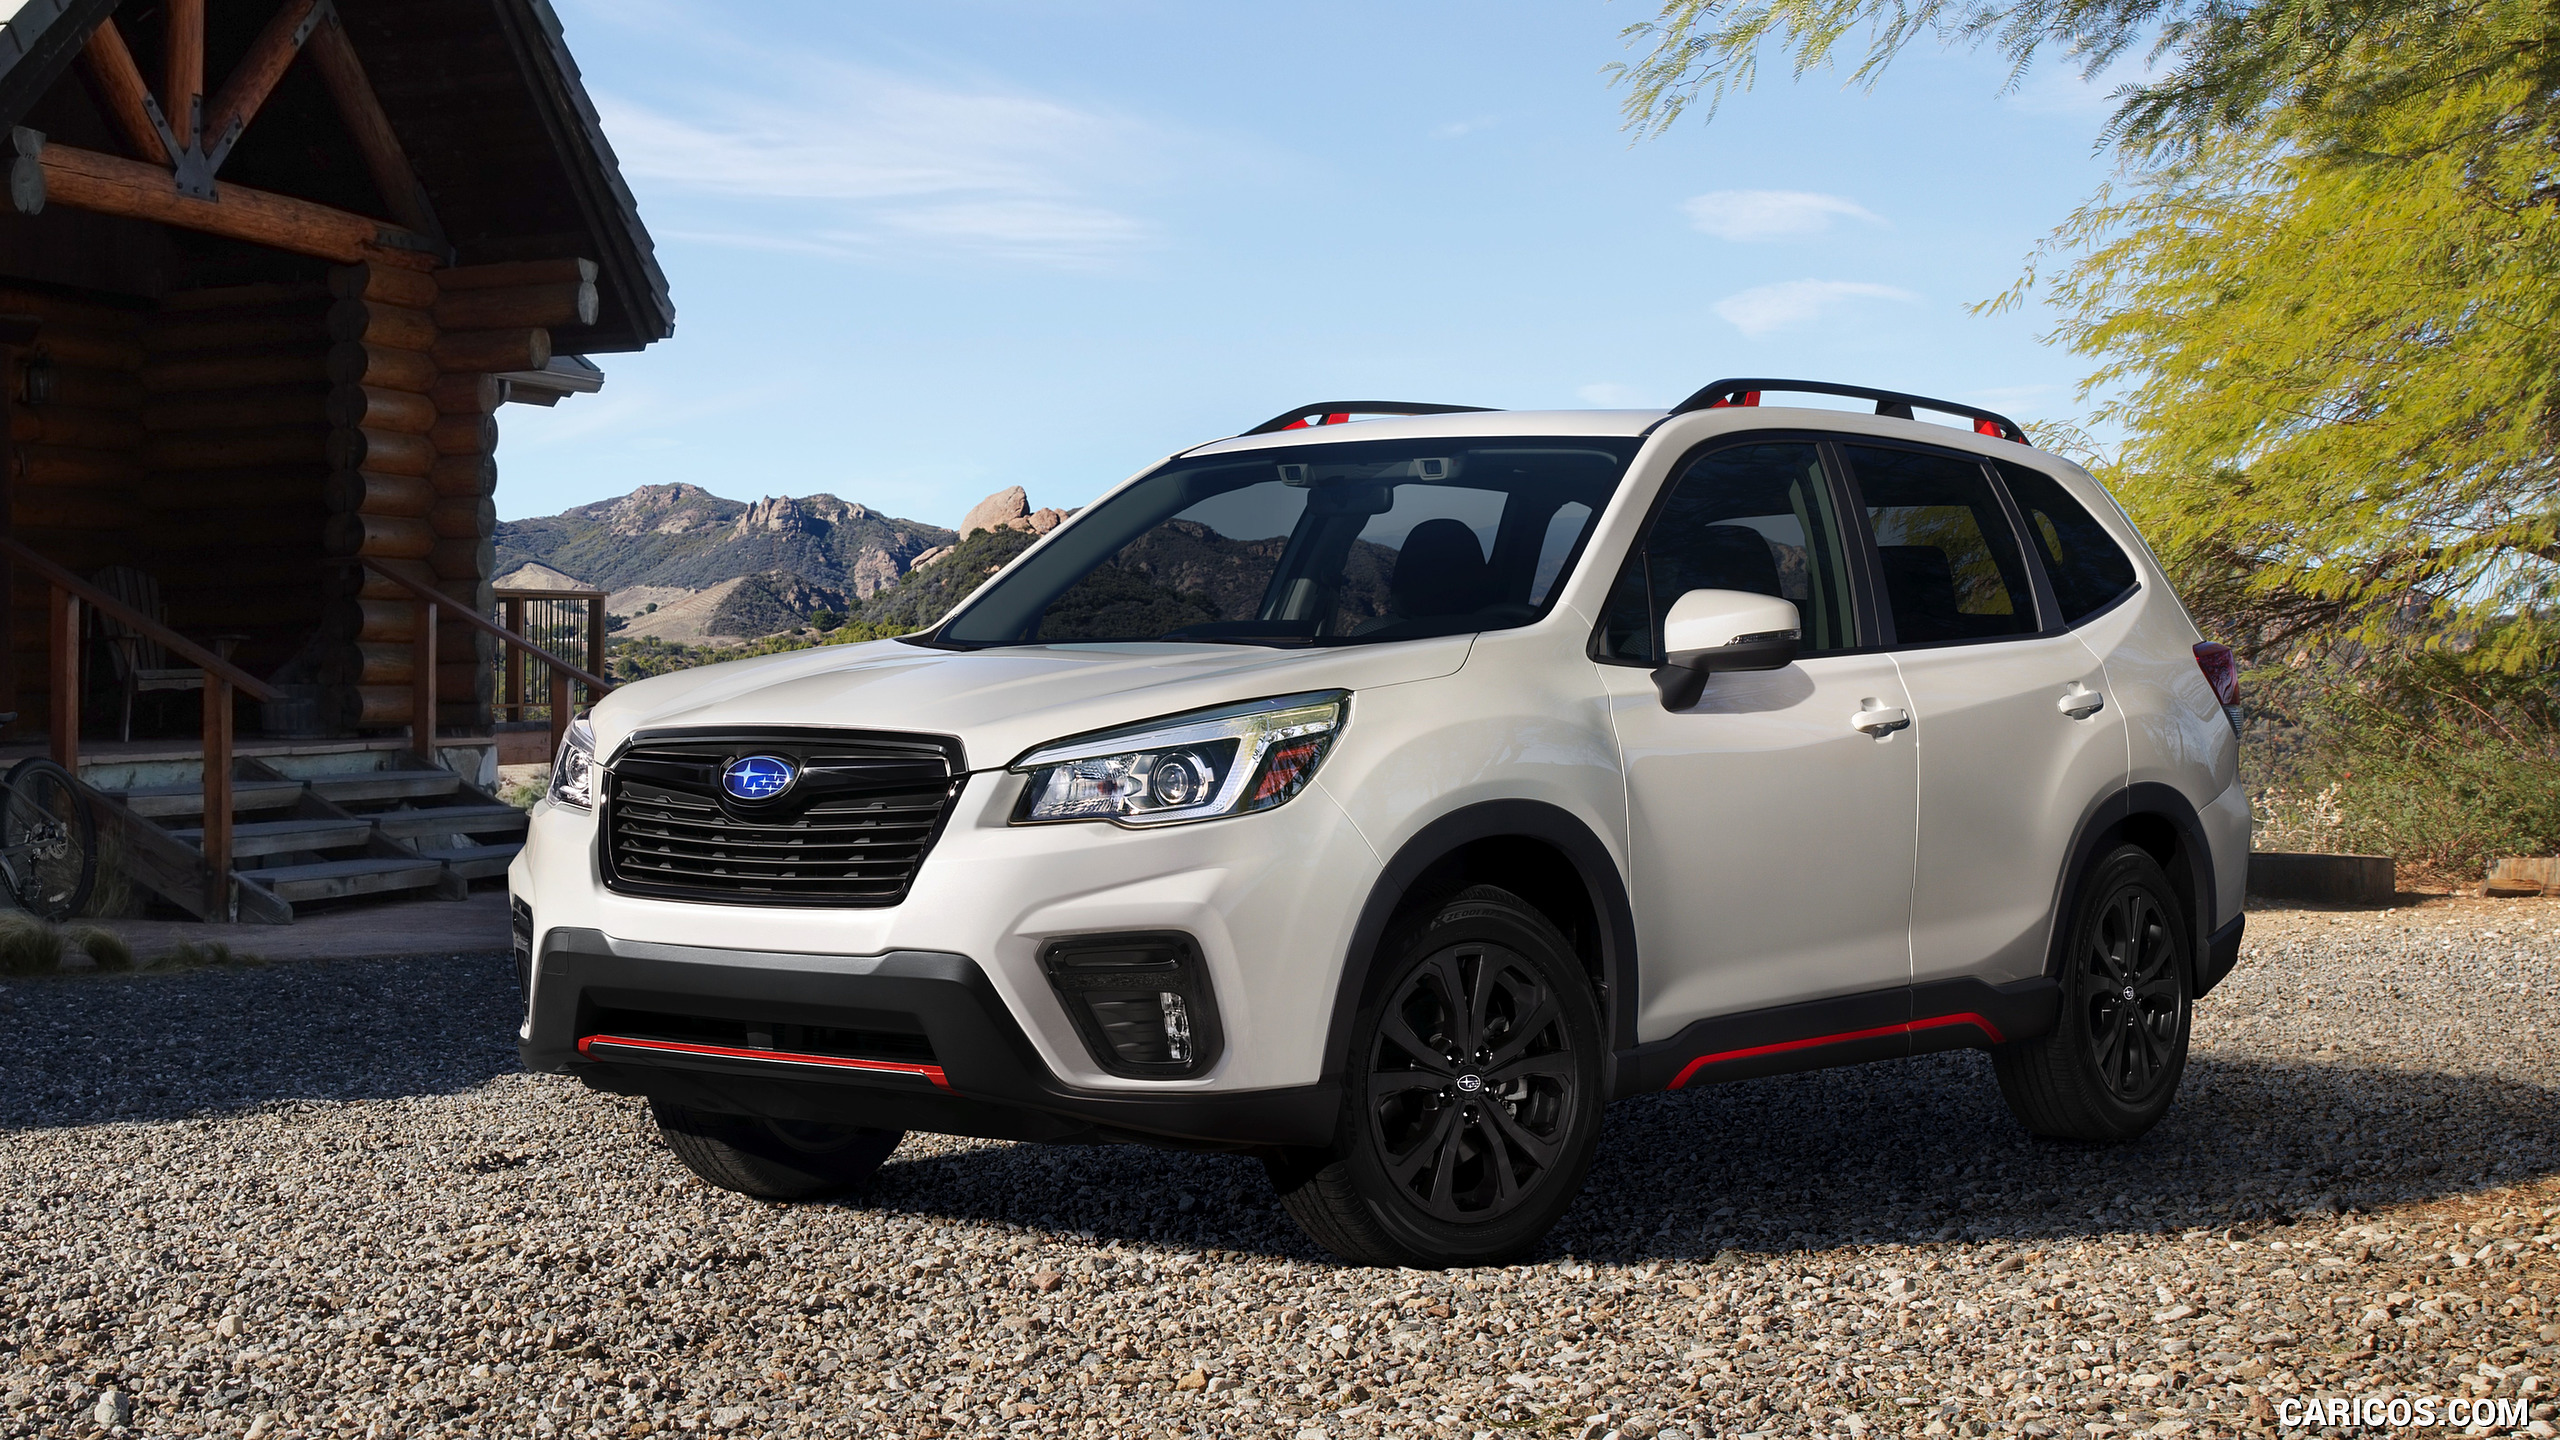 2560x1440 - Subaru Forester Wallpapers 20